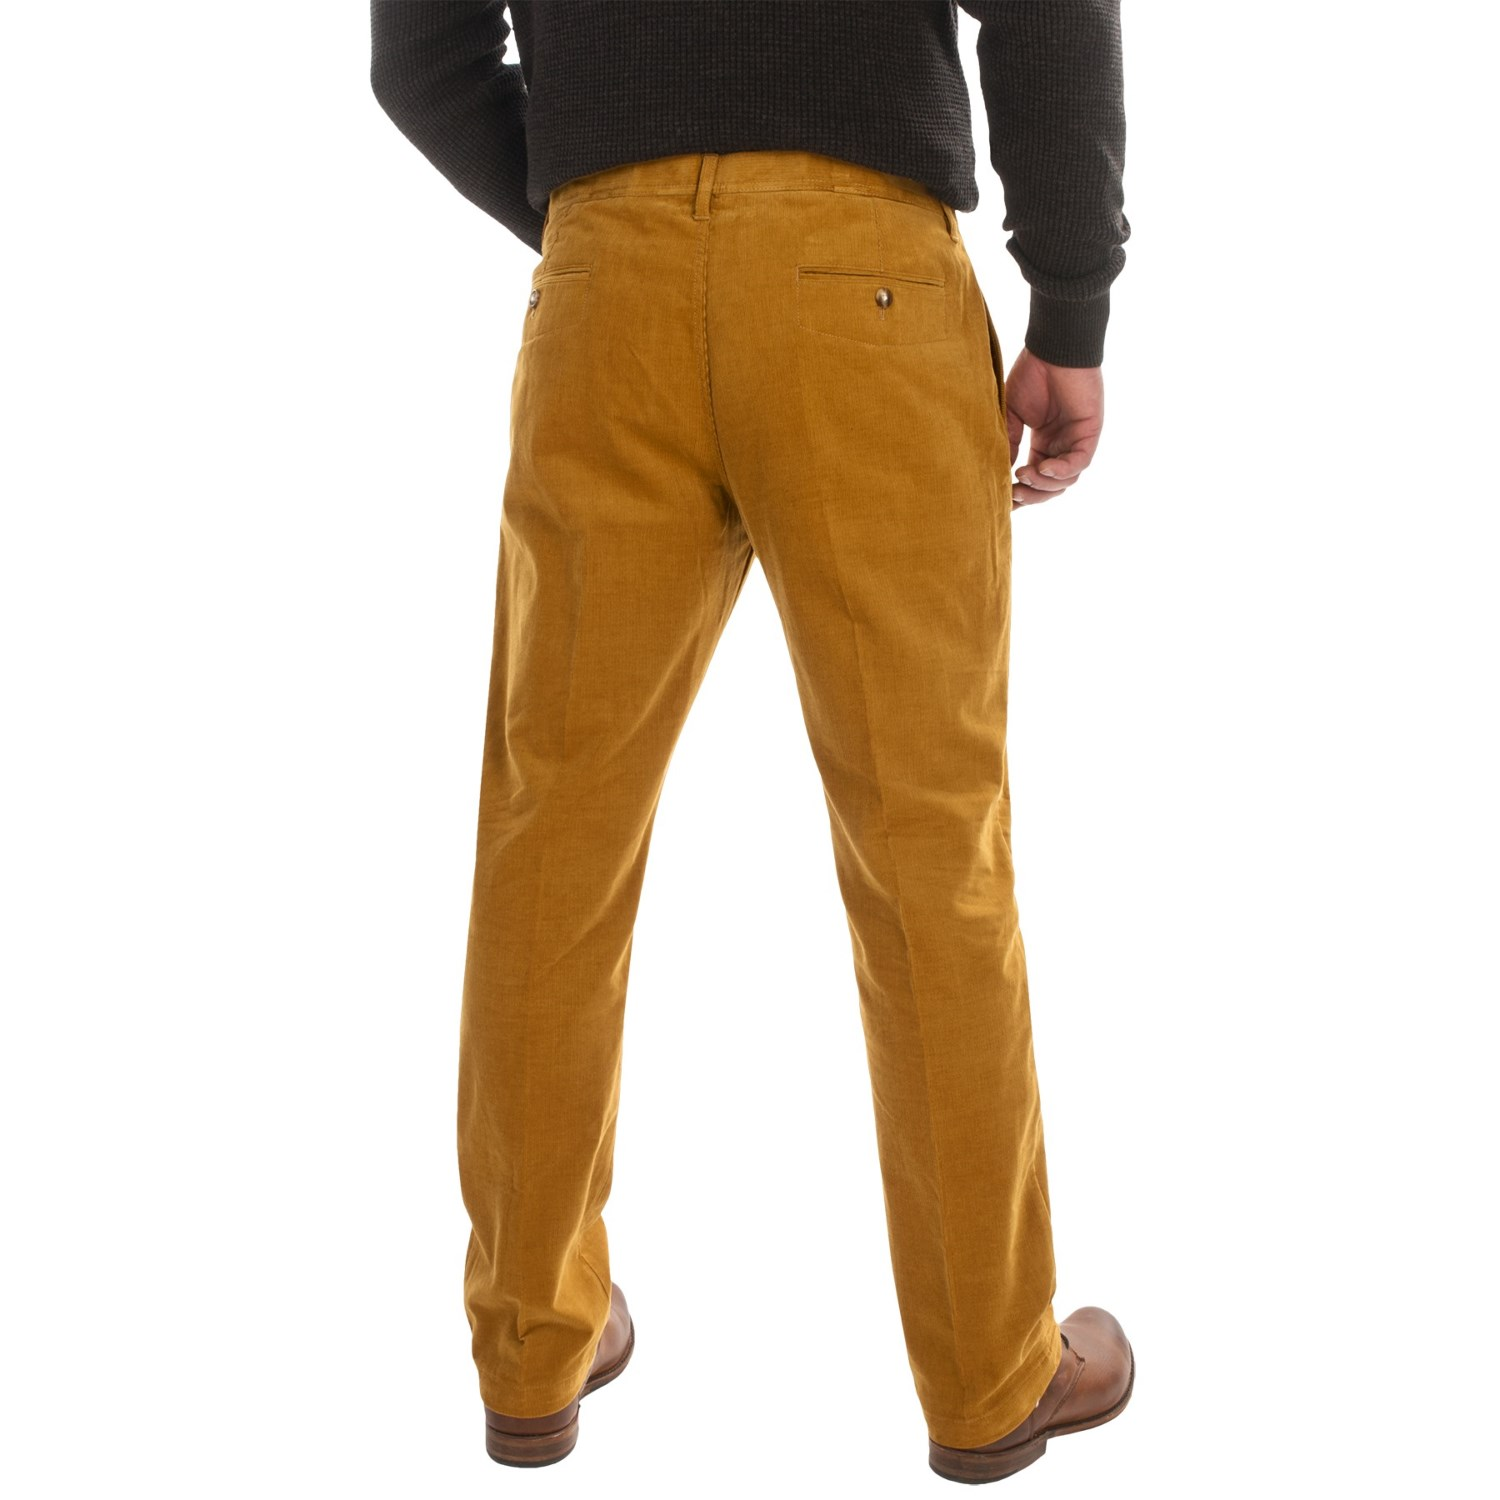 Slim Fit Corduroy Pants (For Men) - Save 74%